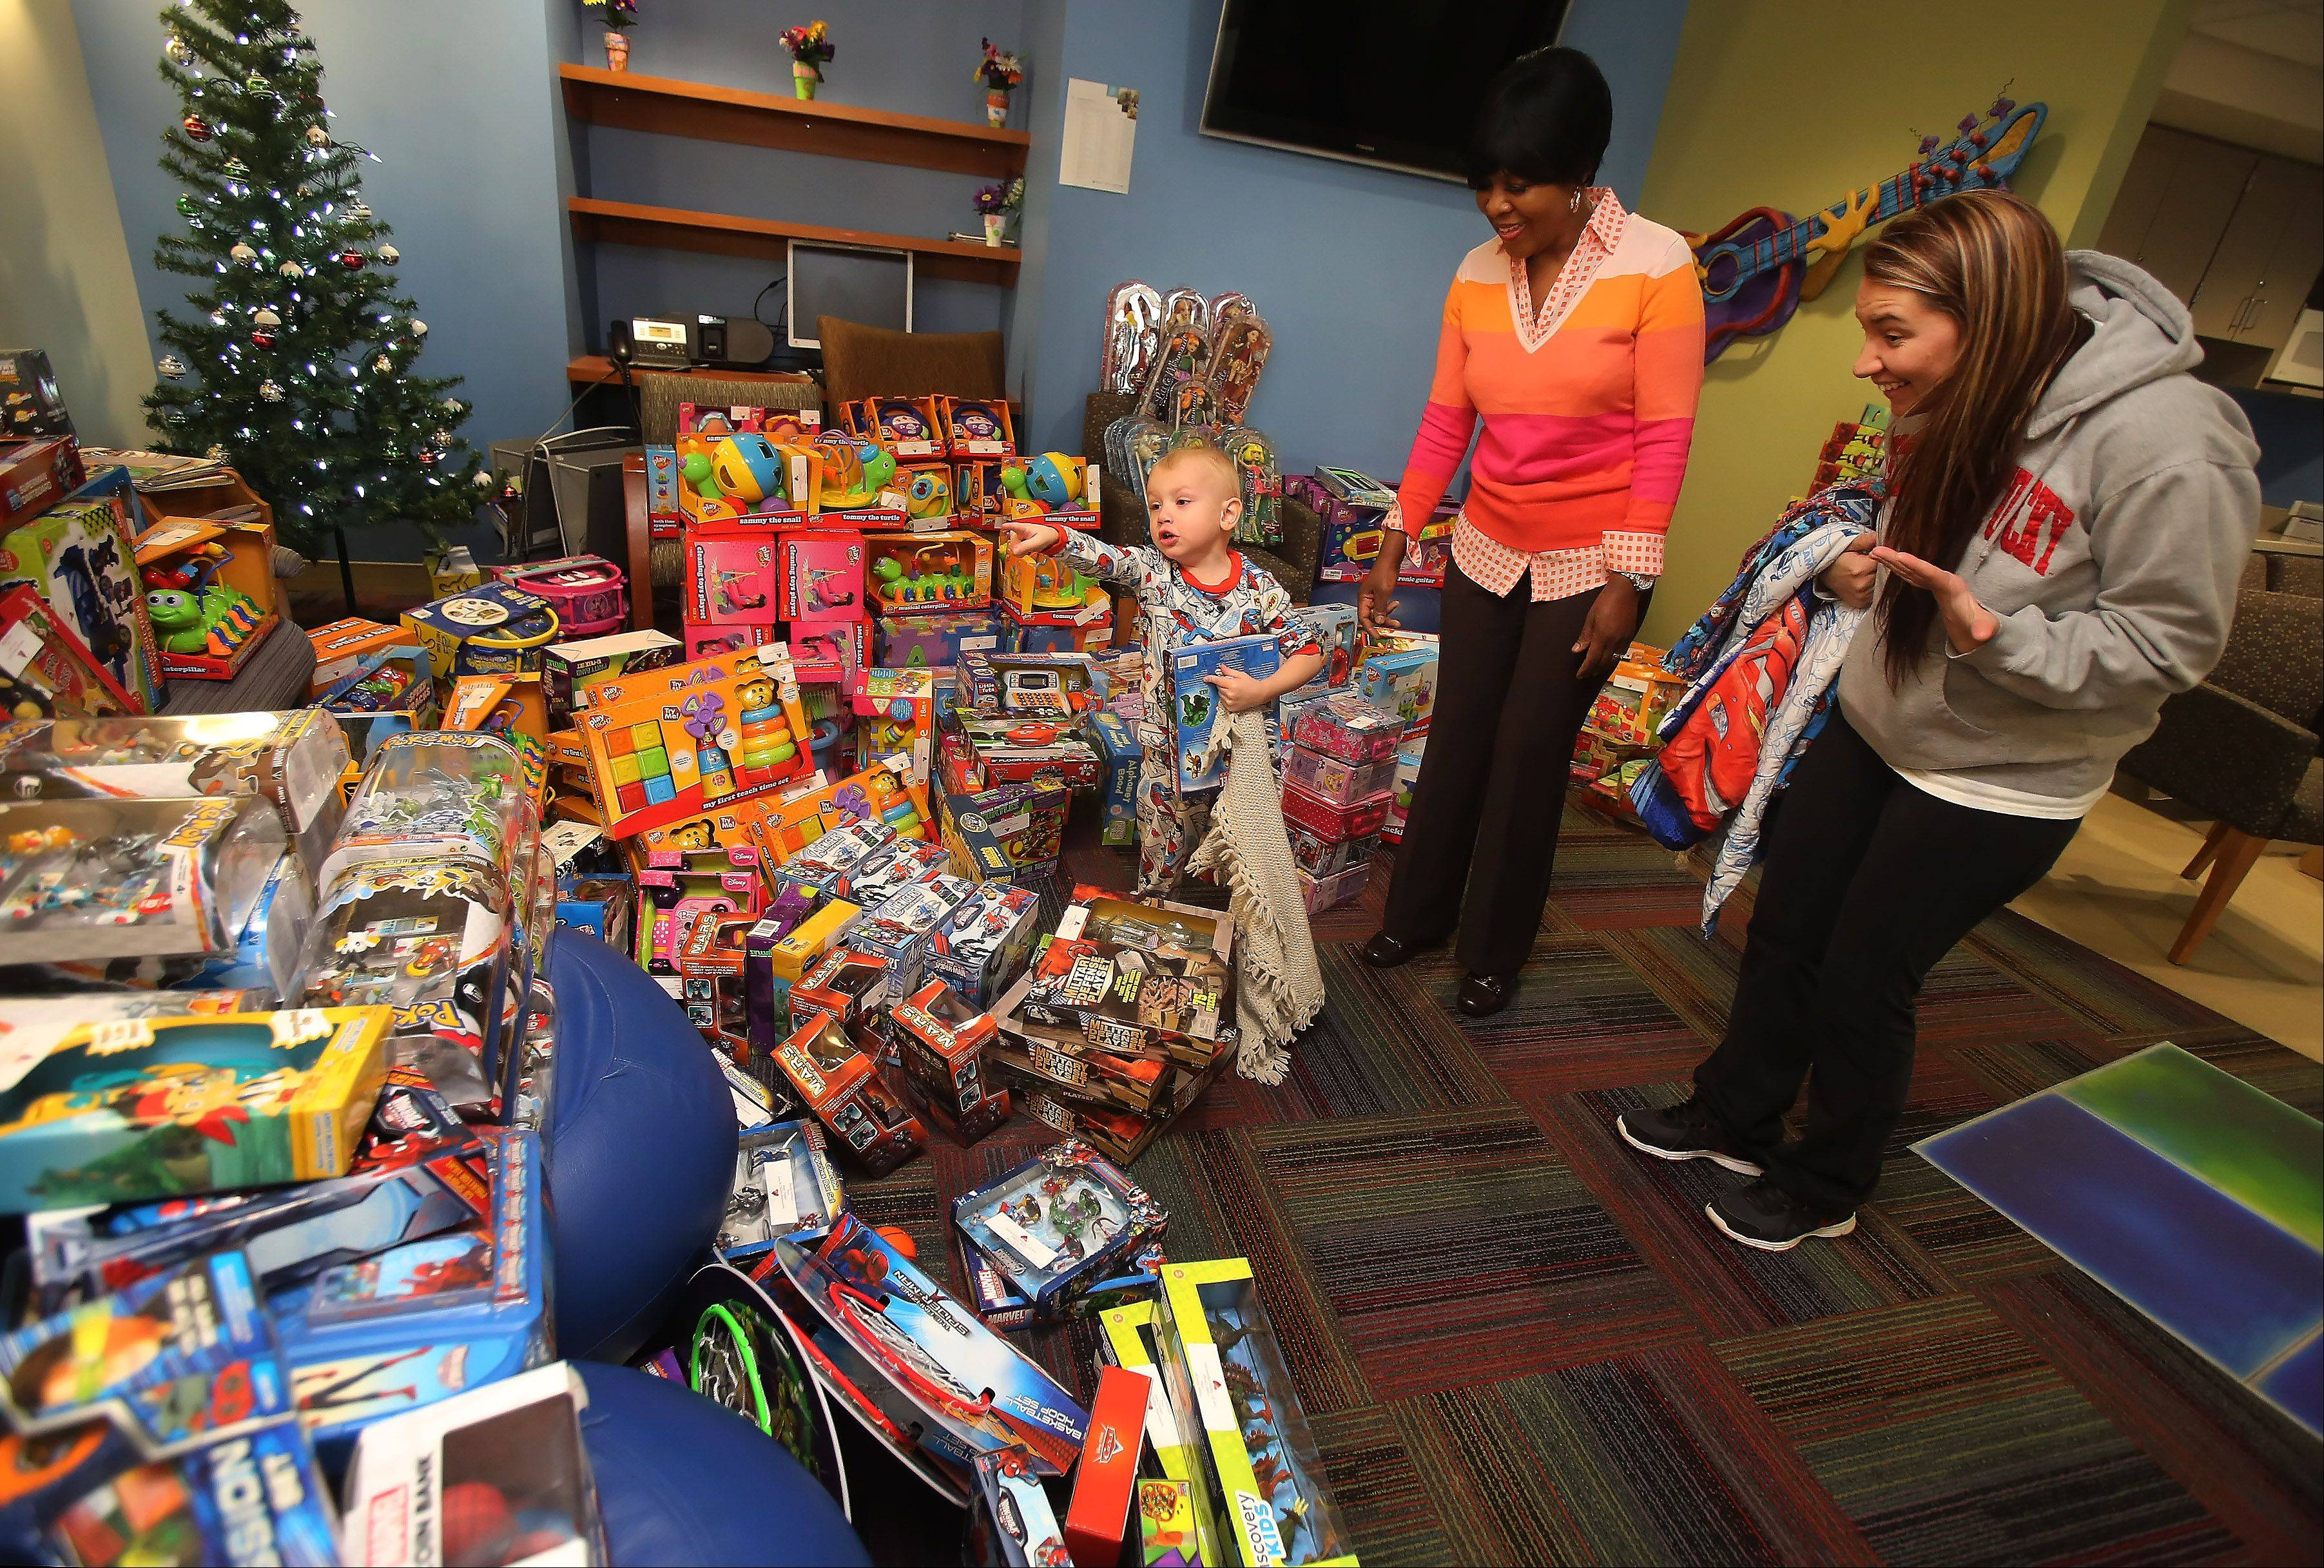 Brandon Hinojosa, 2, of Lake Zurich, and his mother Brandy, right, look for a gift Monday among the hundreds purchased by Advocate hospital cafeteria worker Jessie Tendayi. This is the fourth year Tendayi has purchased gifts for pediatric patients. She gave out hundreds Monday to children at Advocate Children's Hospital in Park Ridge.